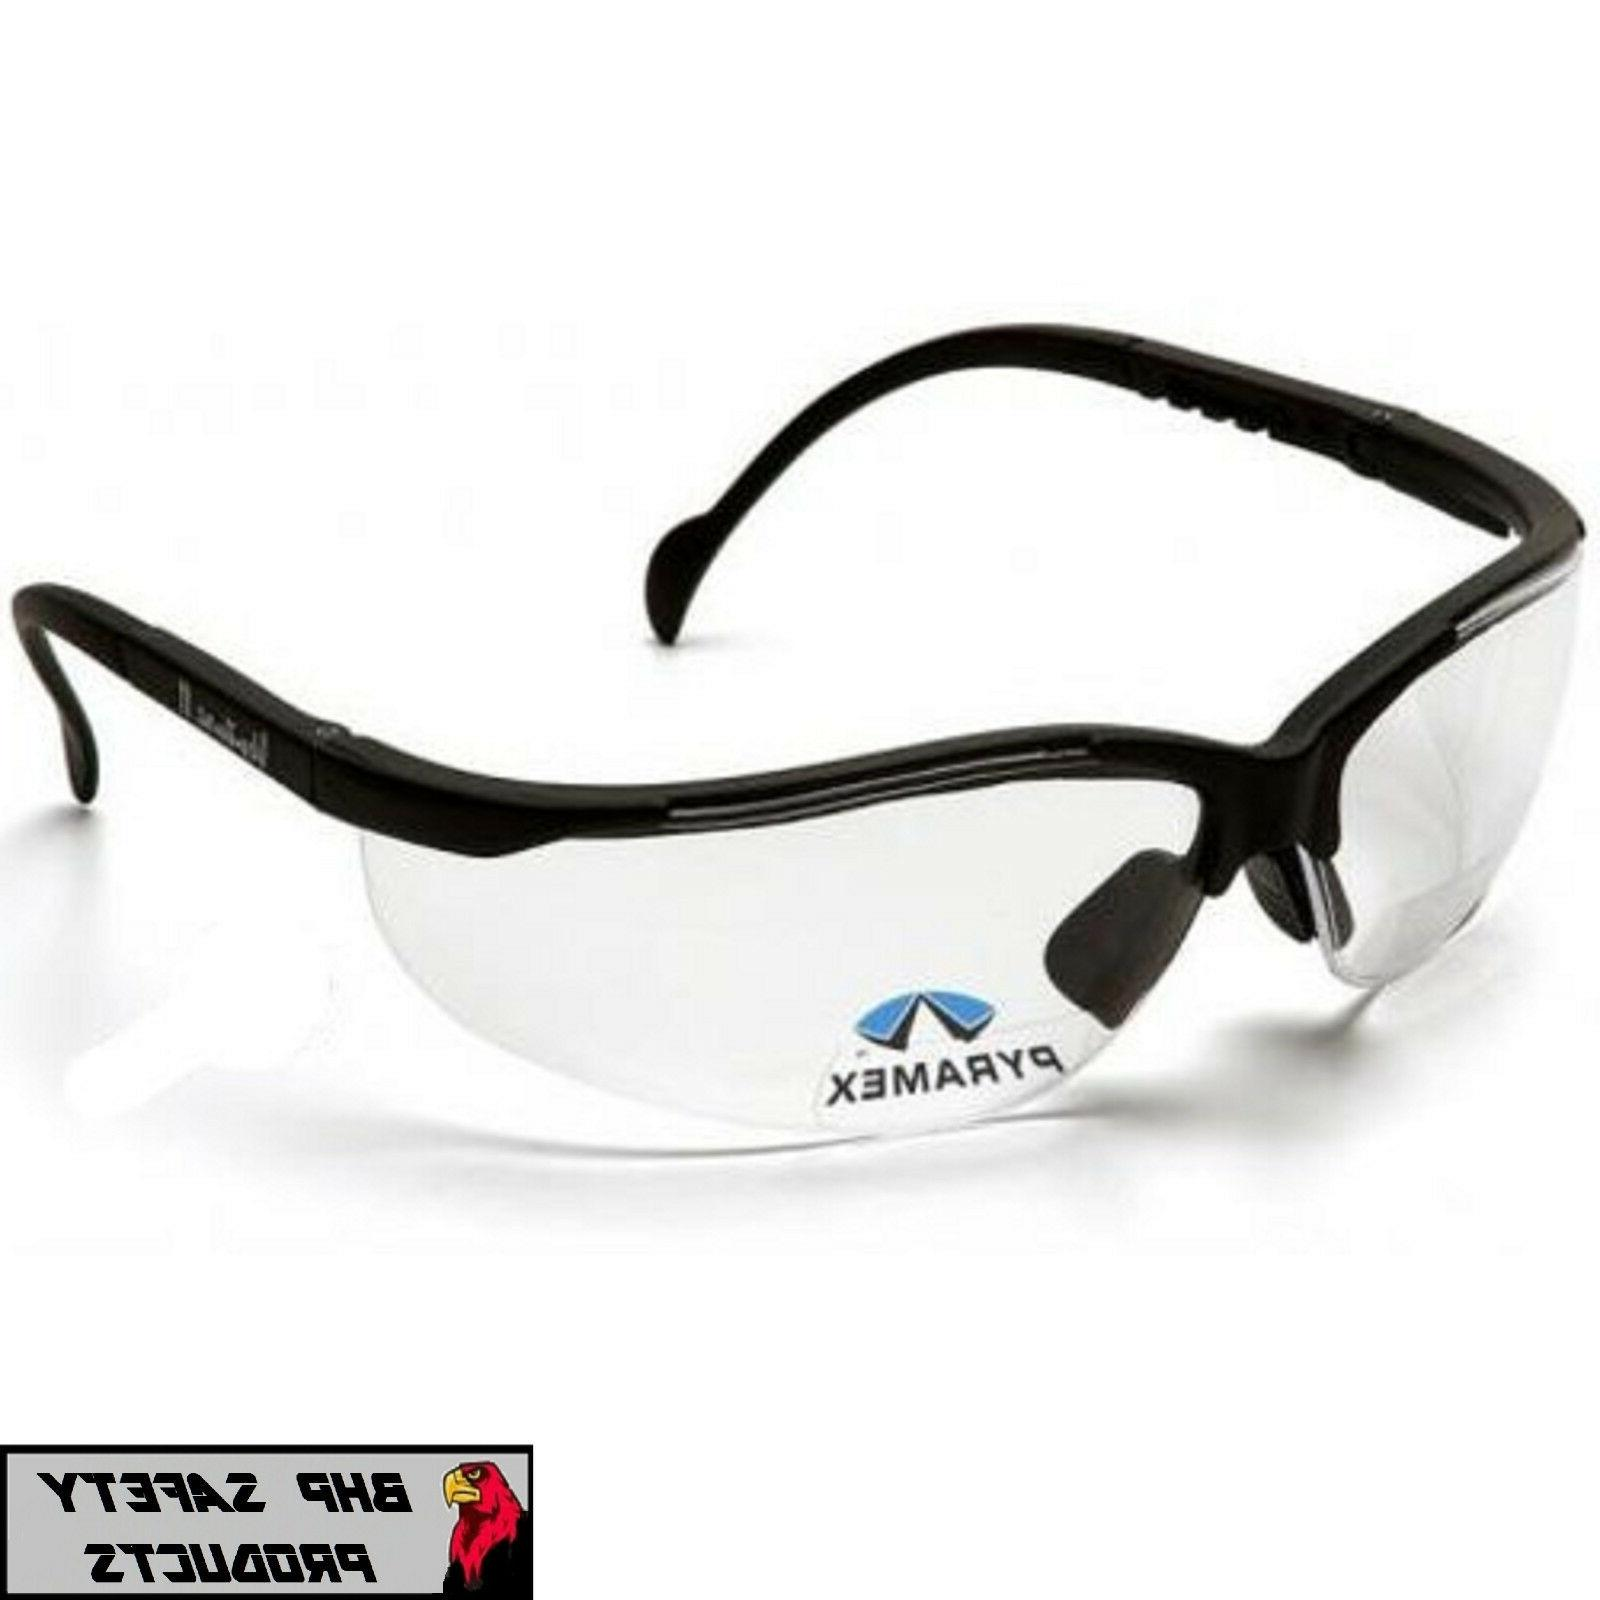 PYRAMEX VENTURE II V2 READER SAFETY GLASSES CLEAR BIFOCAL +2